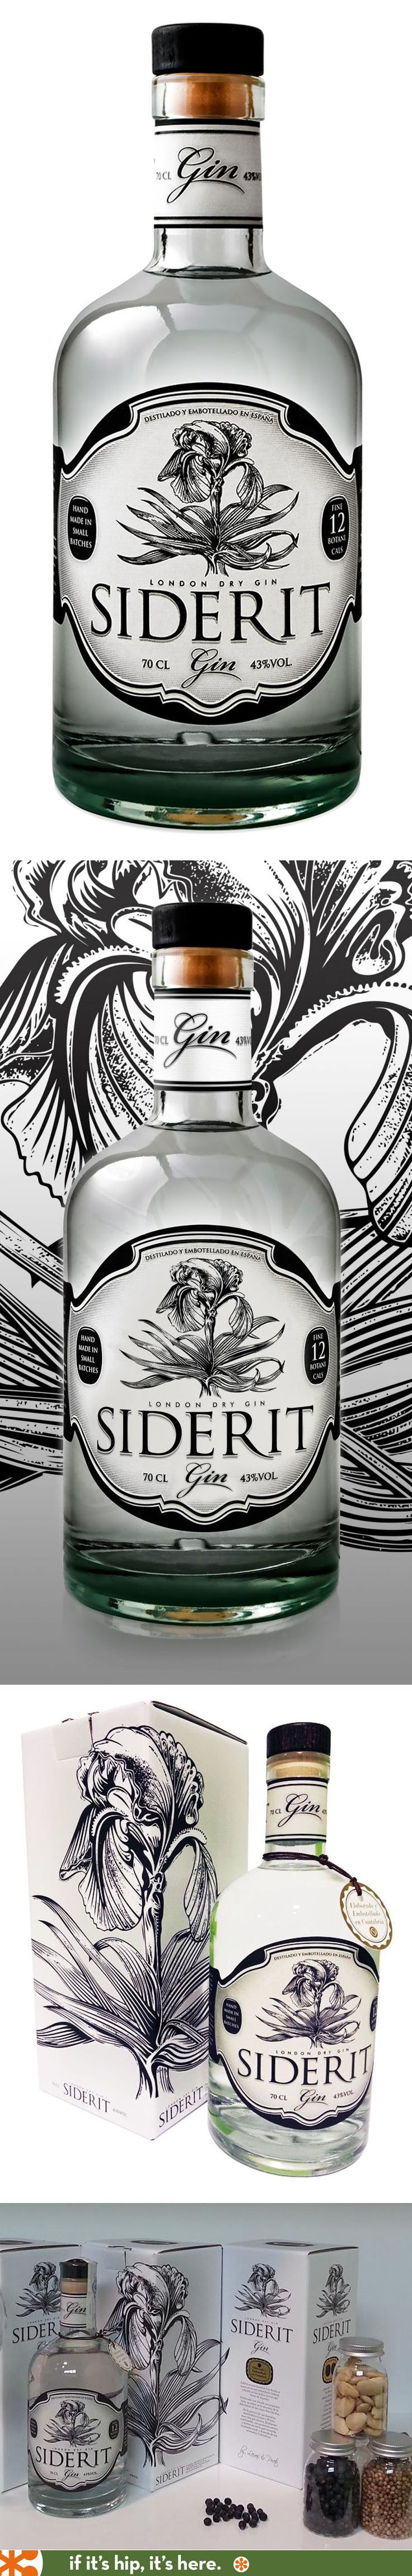 Siderit Gin has a very pretty bottle and carton design.